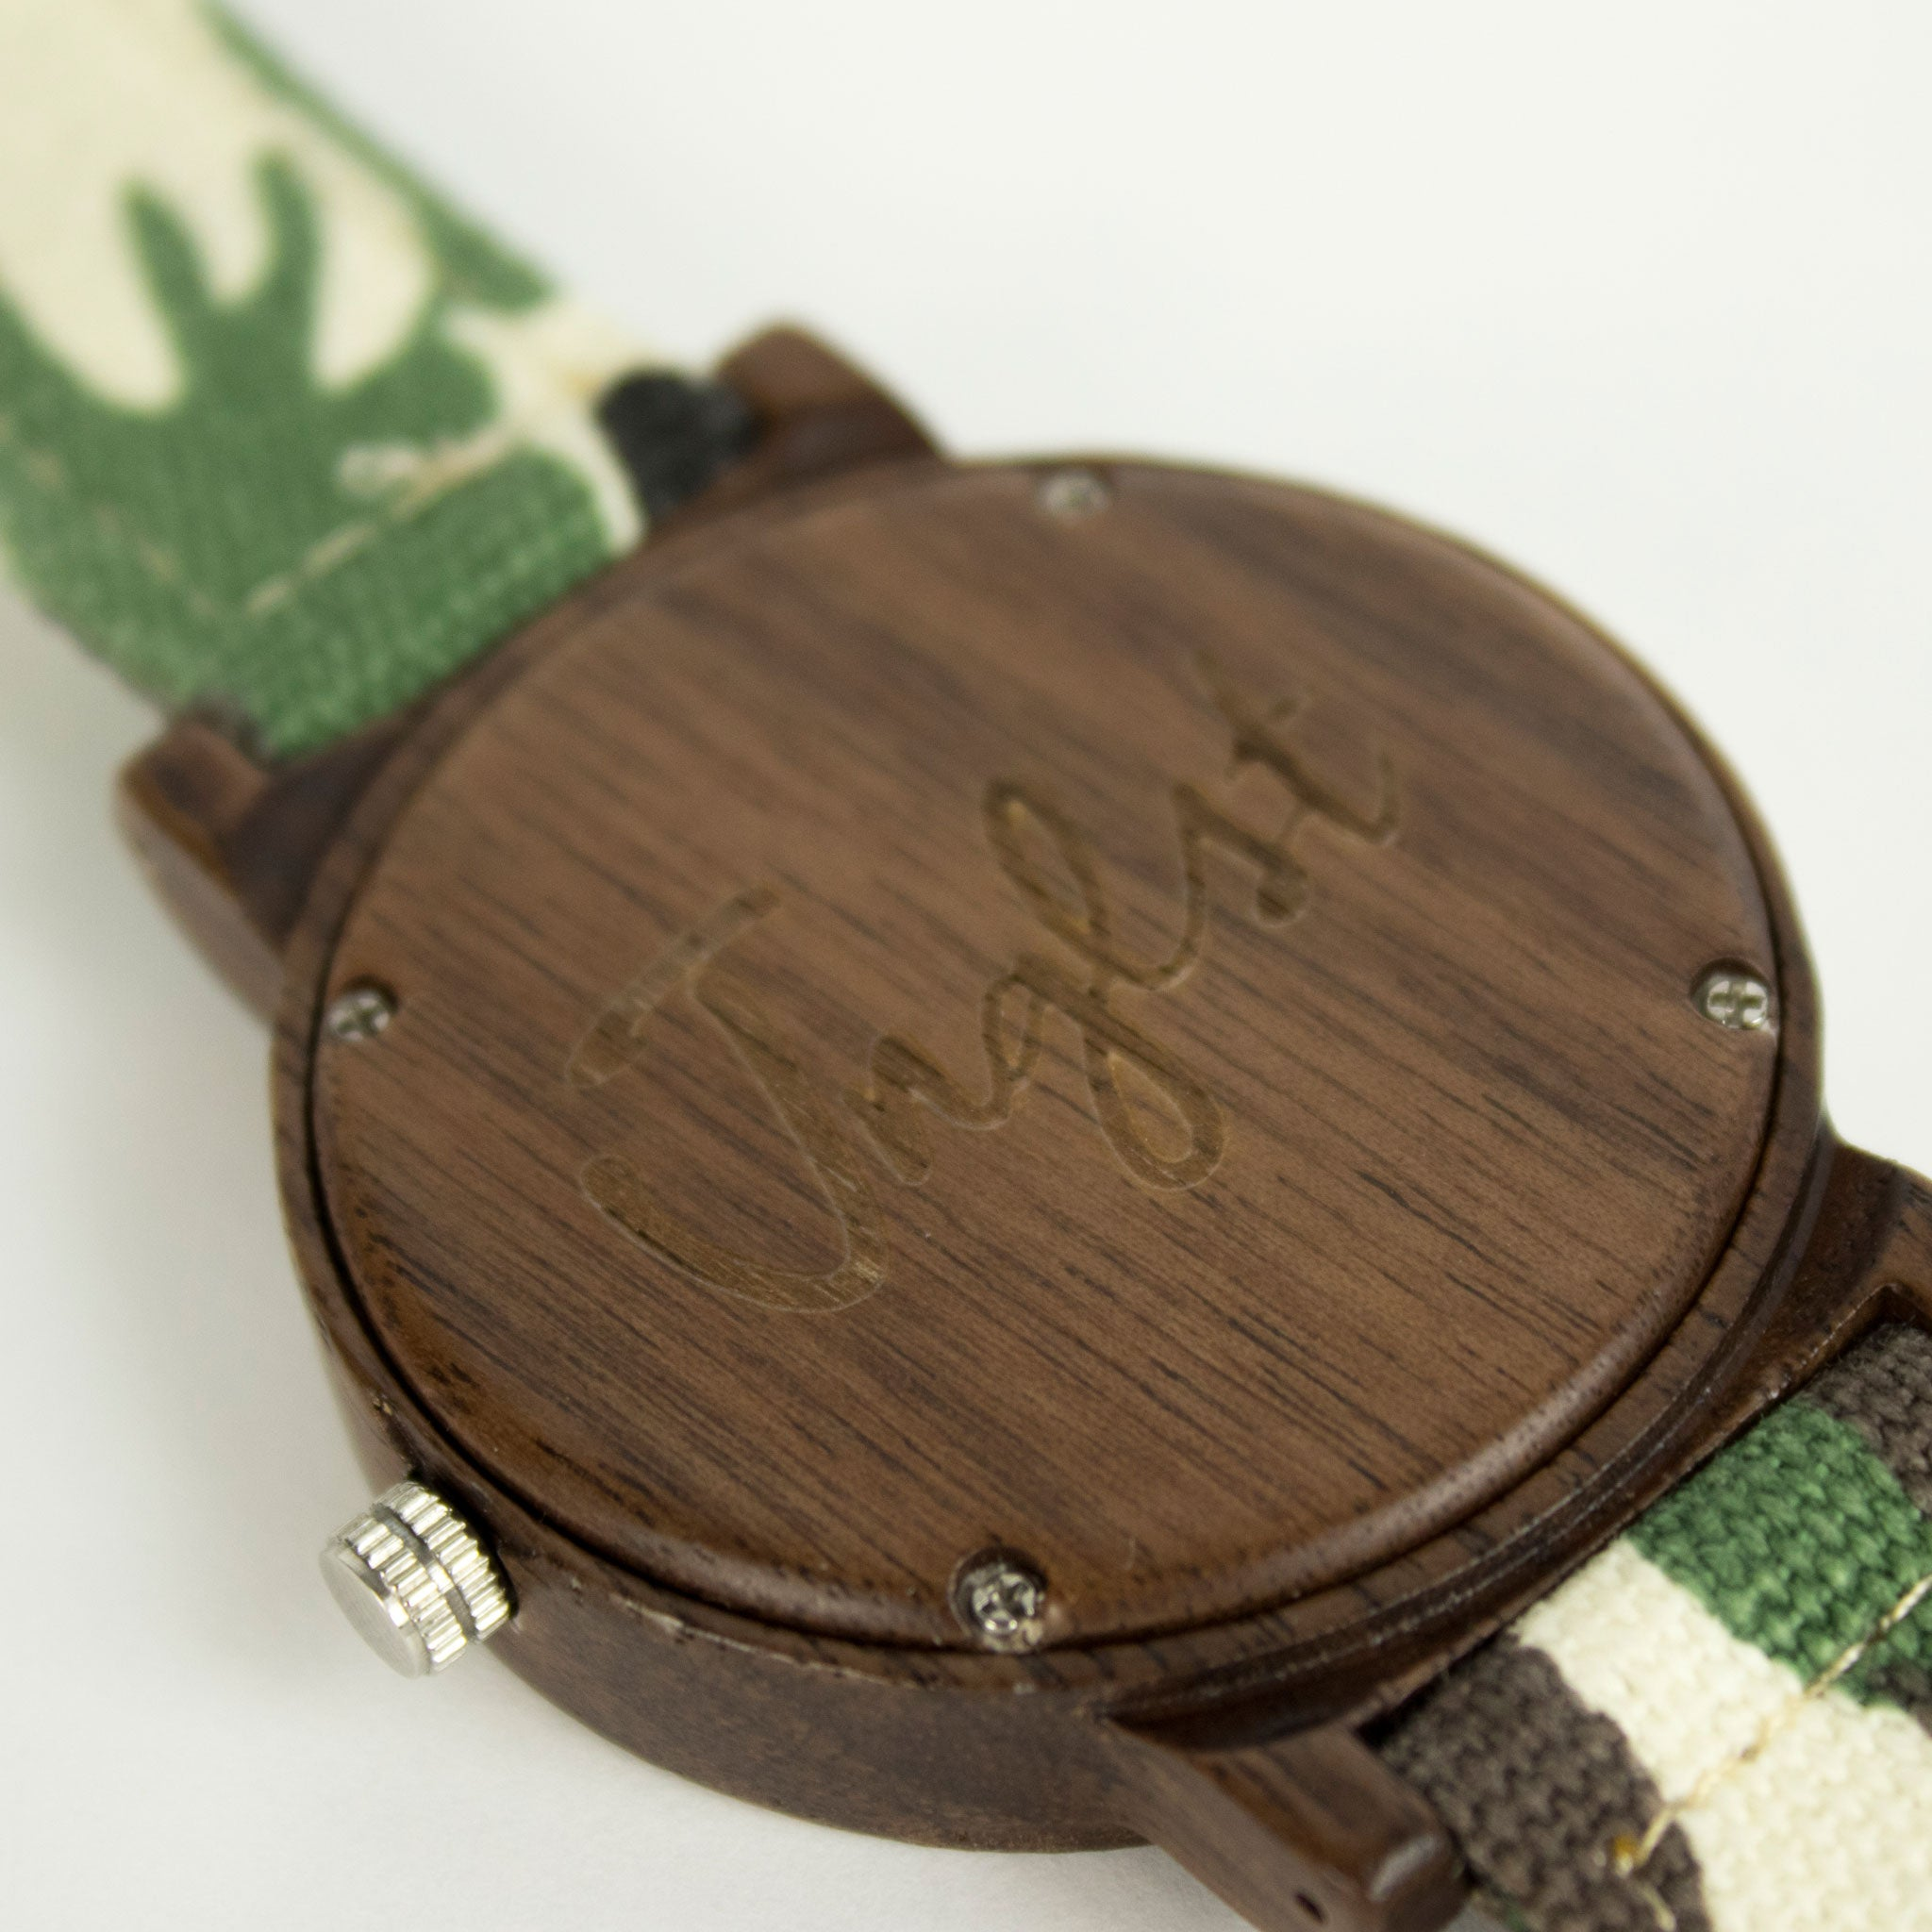 Bamboo Watch for Junglists from back